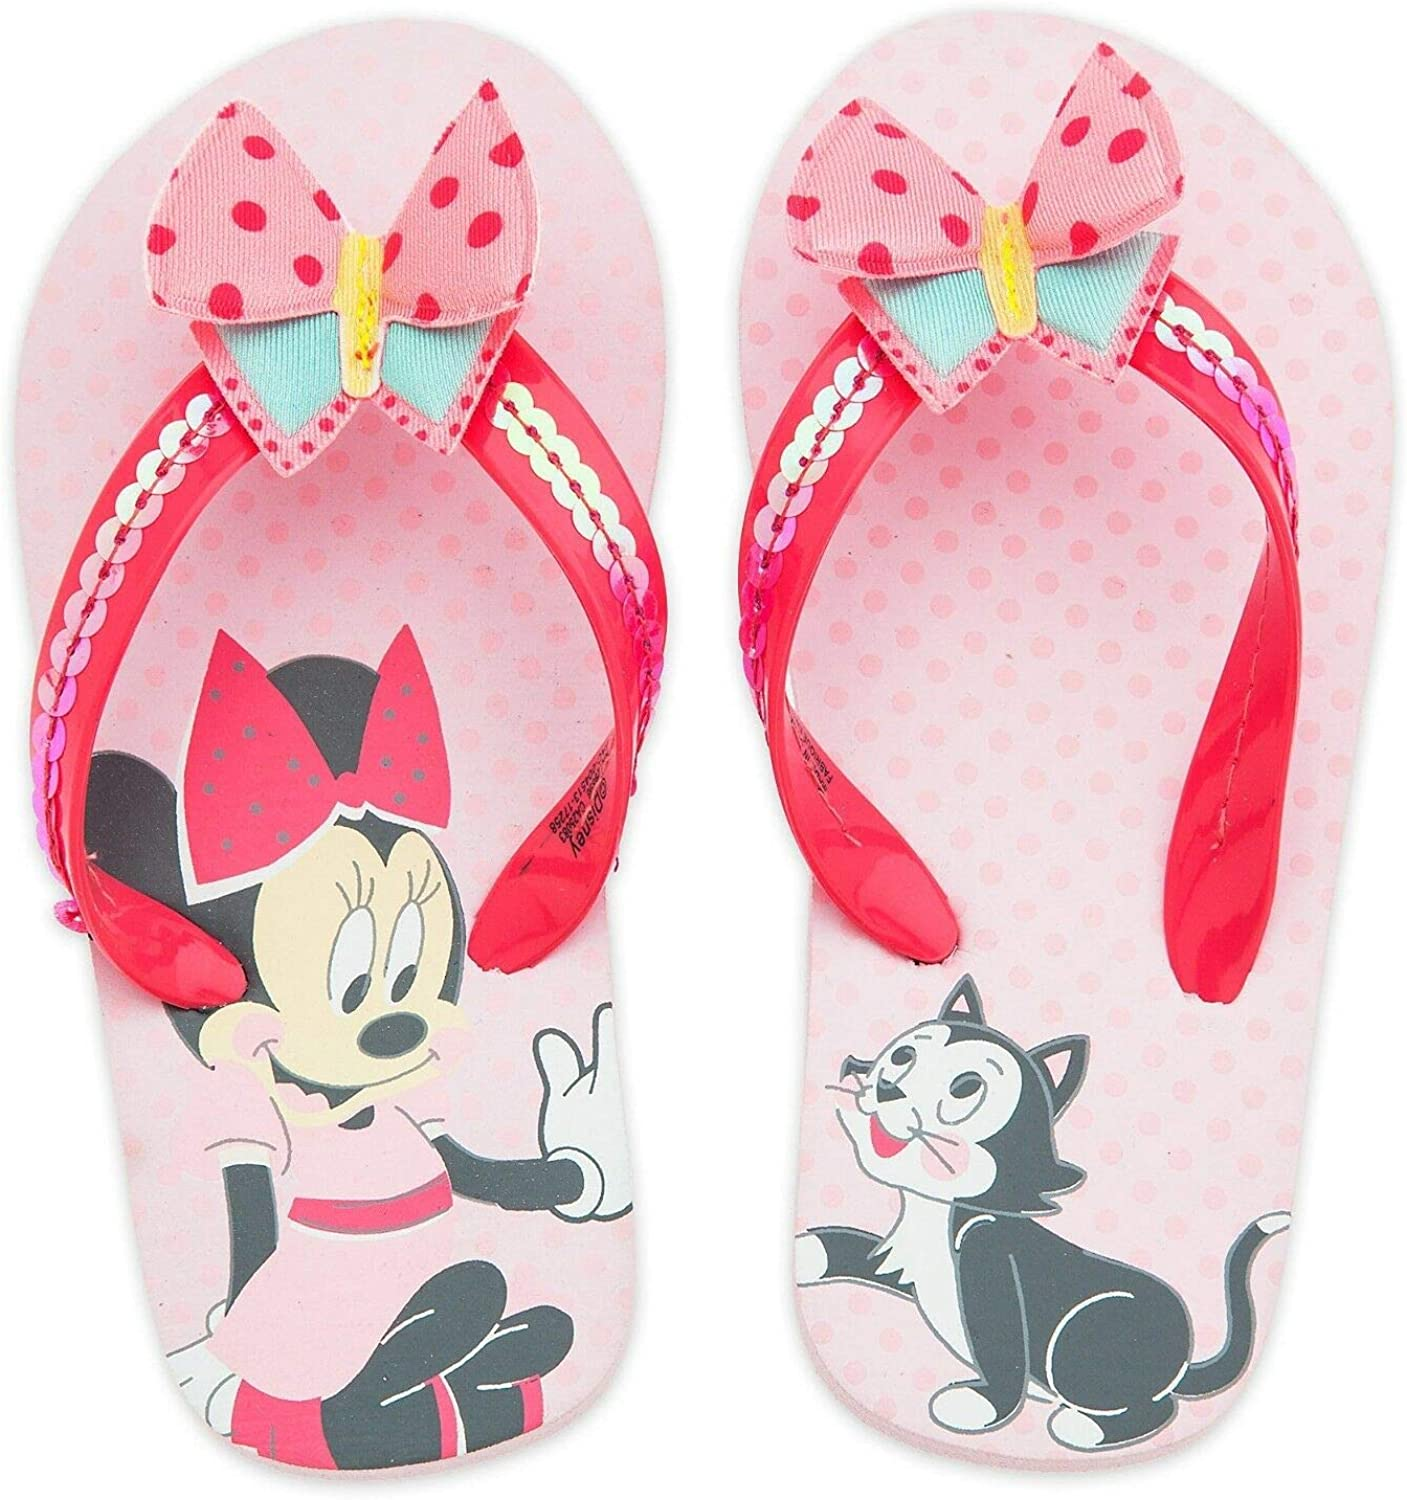 Minnie Mouse Sandals Size 9 Disney Rubber Sole with Bow